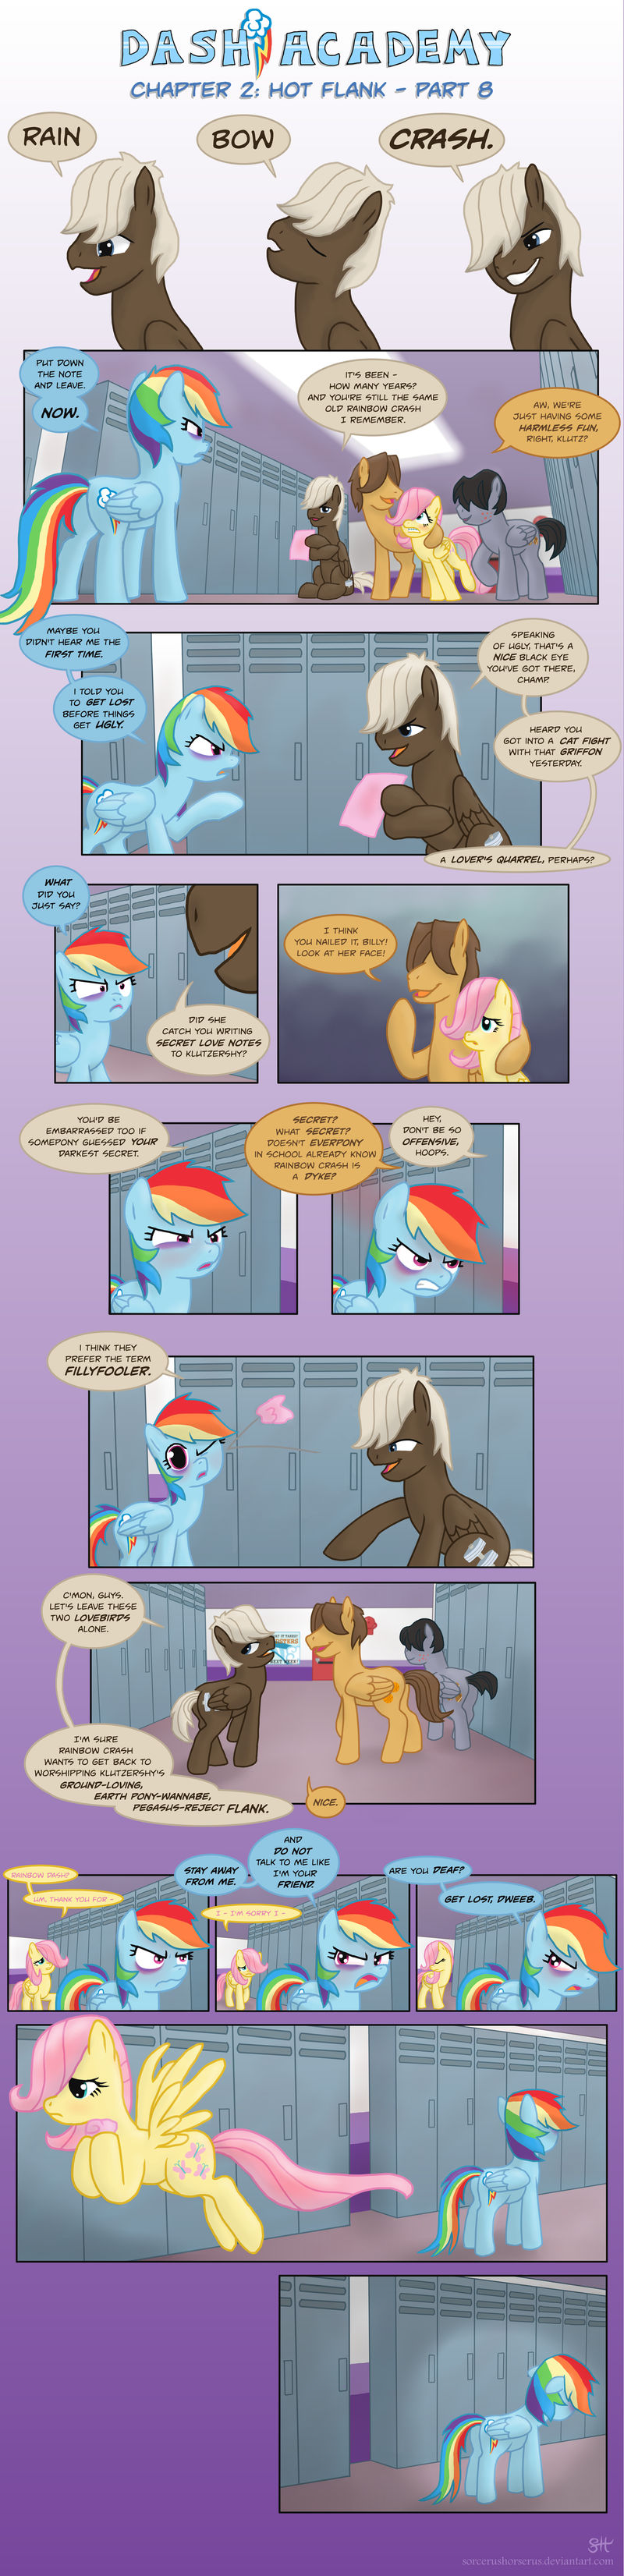 Dash Academy 2-Hot Flank Part8